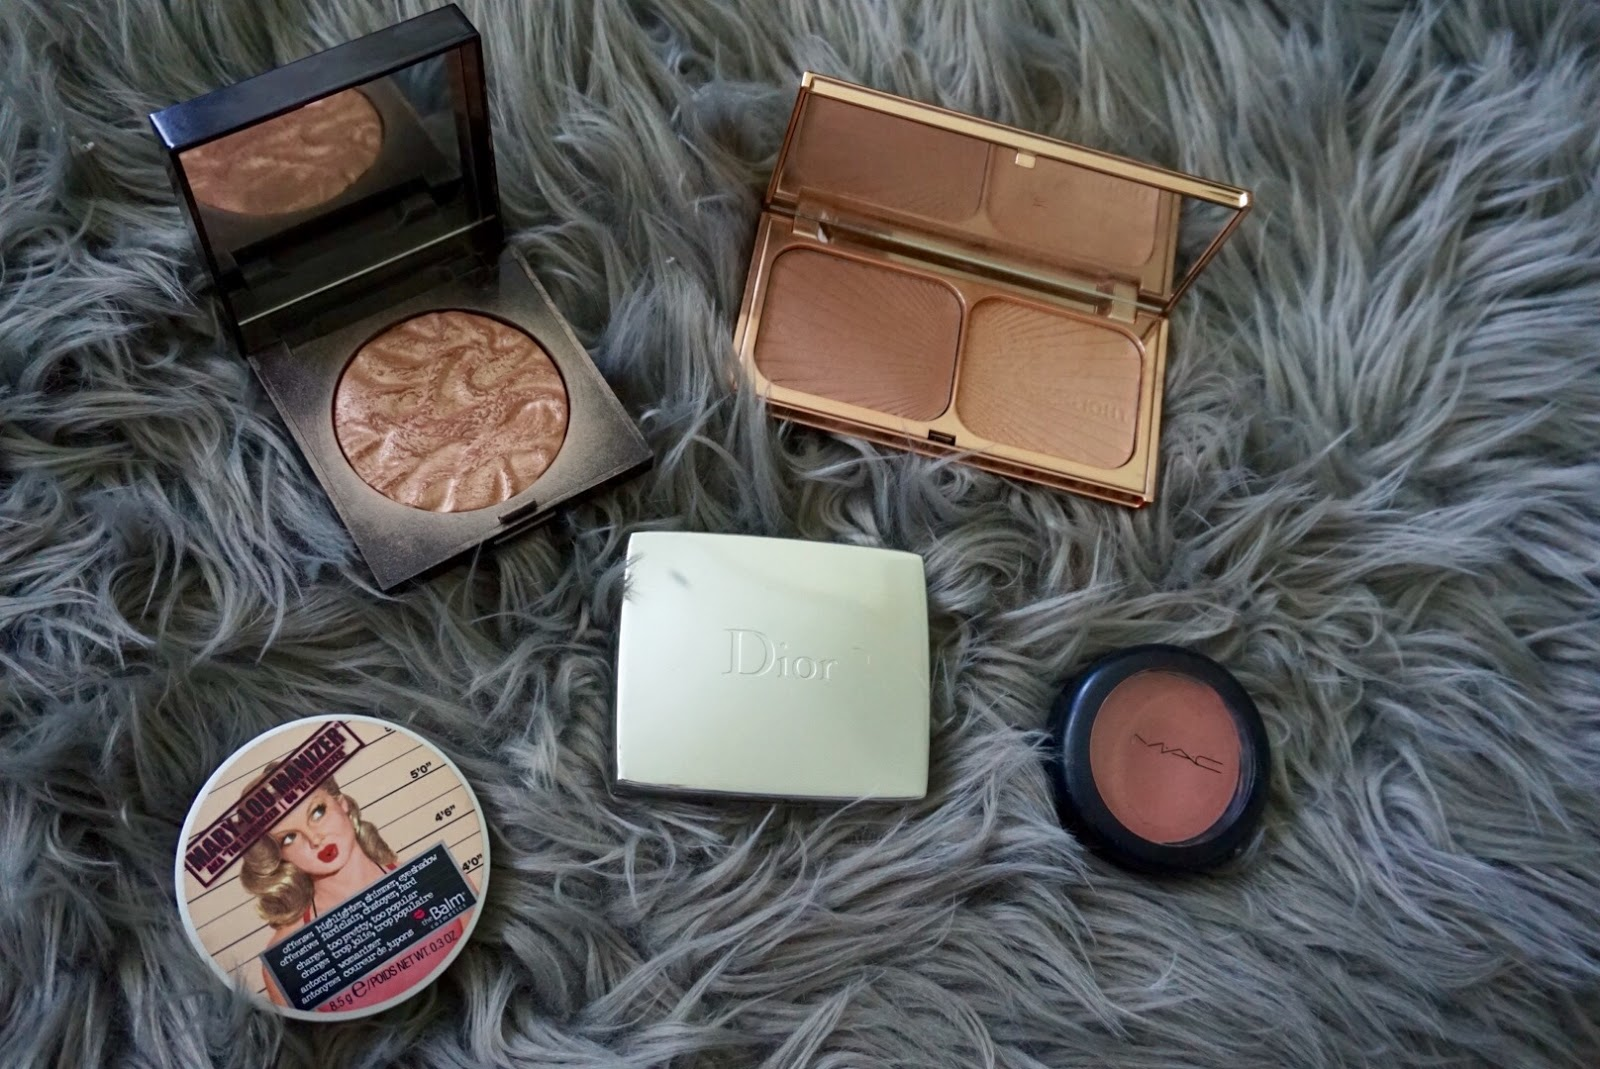 The best blush and highlight products